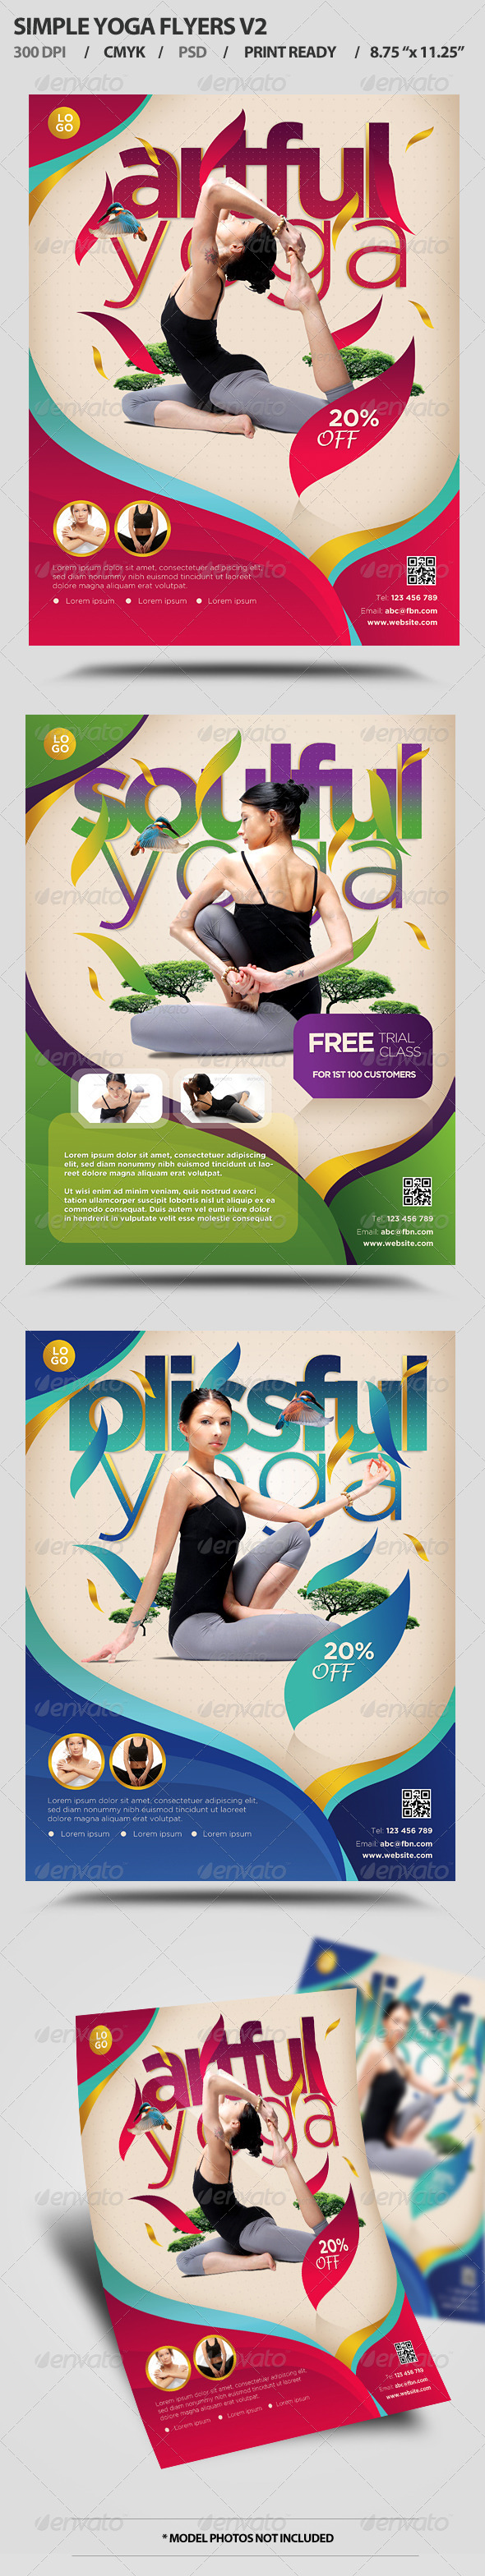 Simple Yoga Flyers V2 - Corporate Flyers